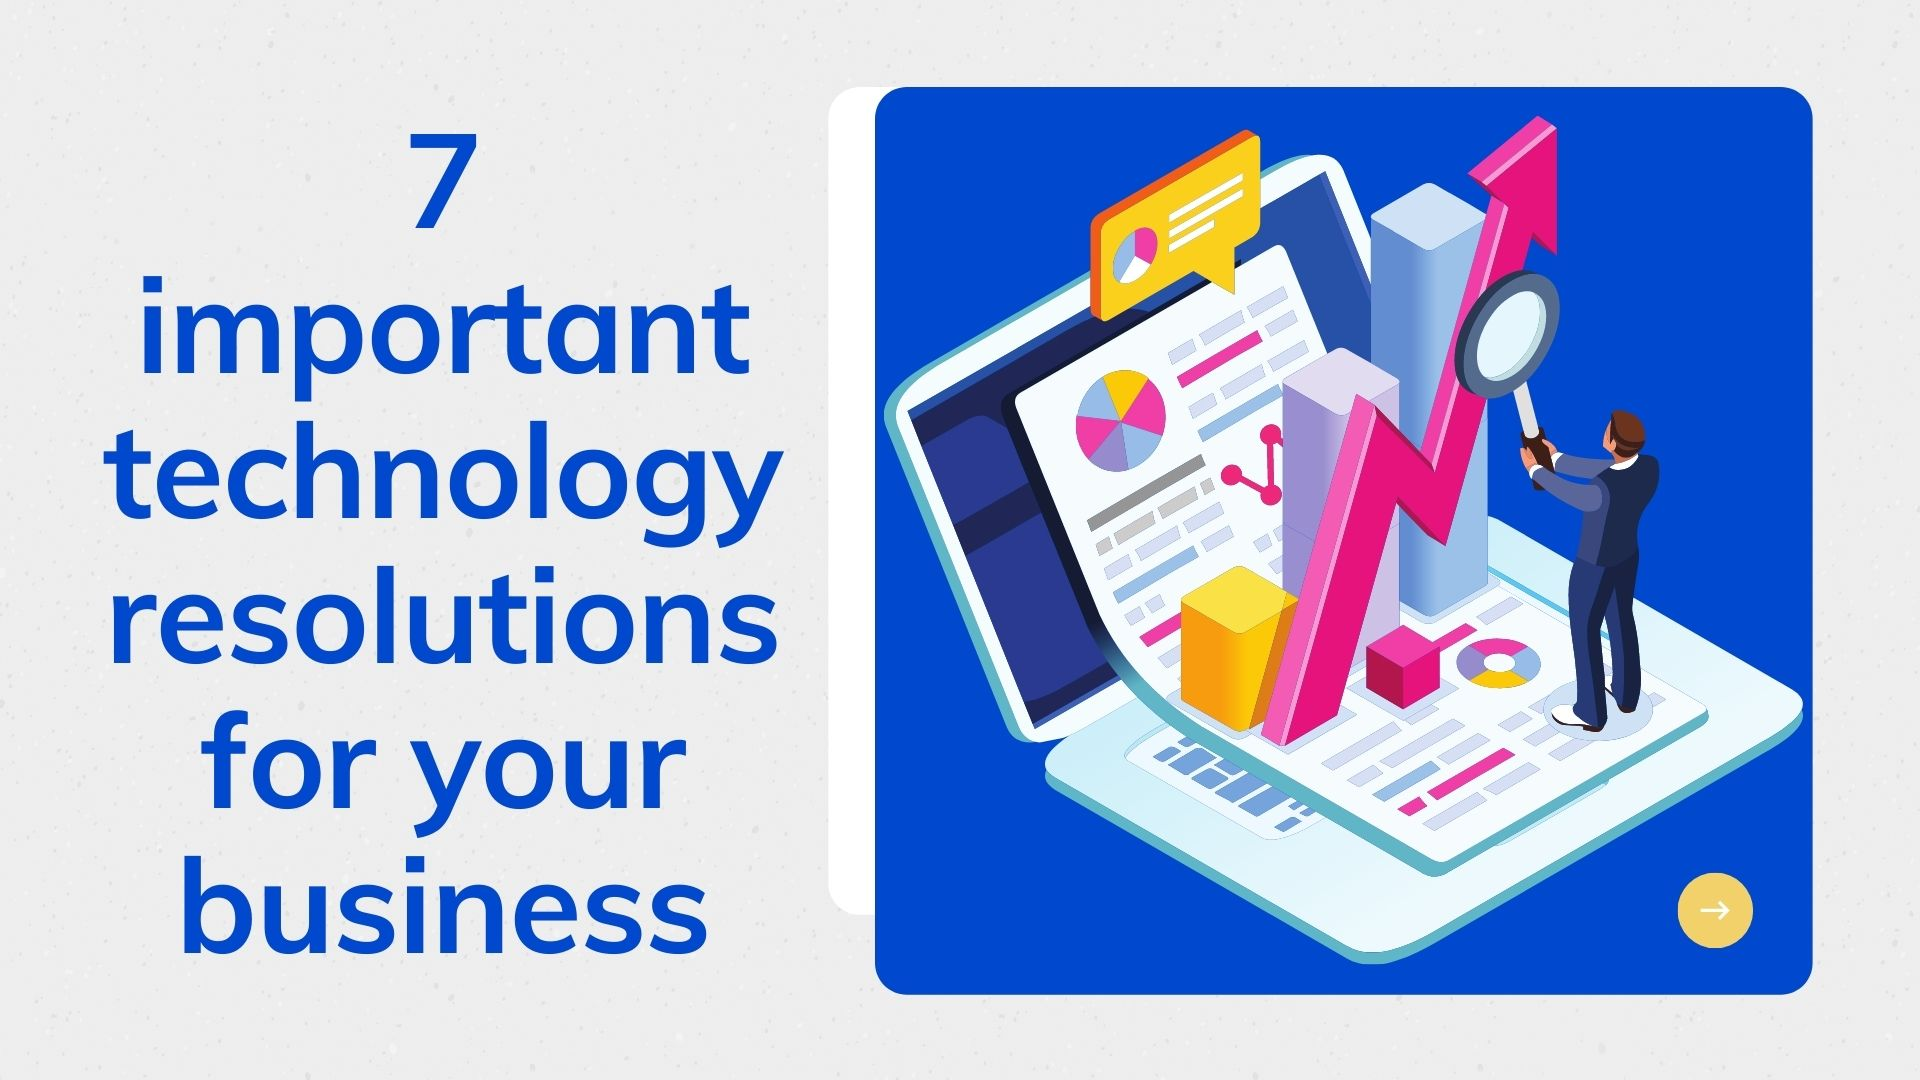 7 important technology resolutions for your business